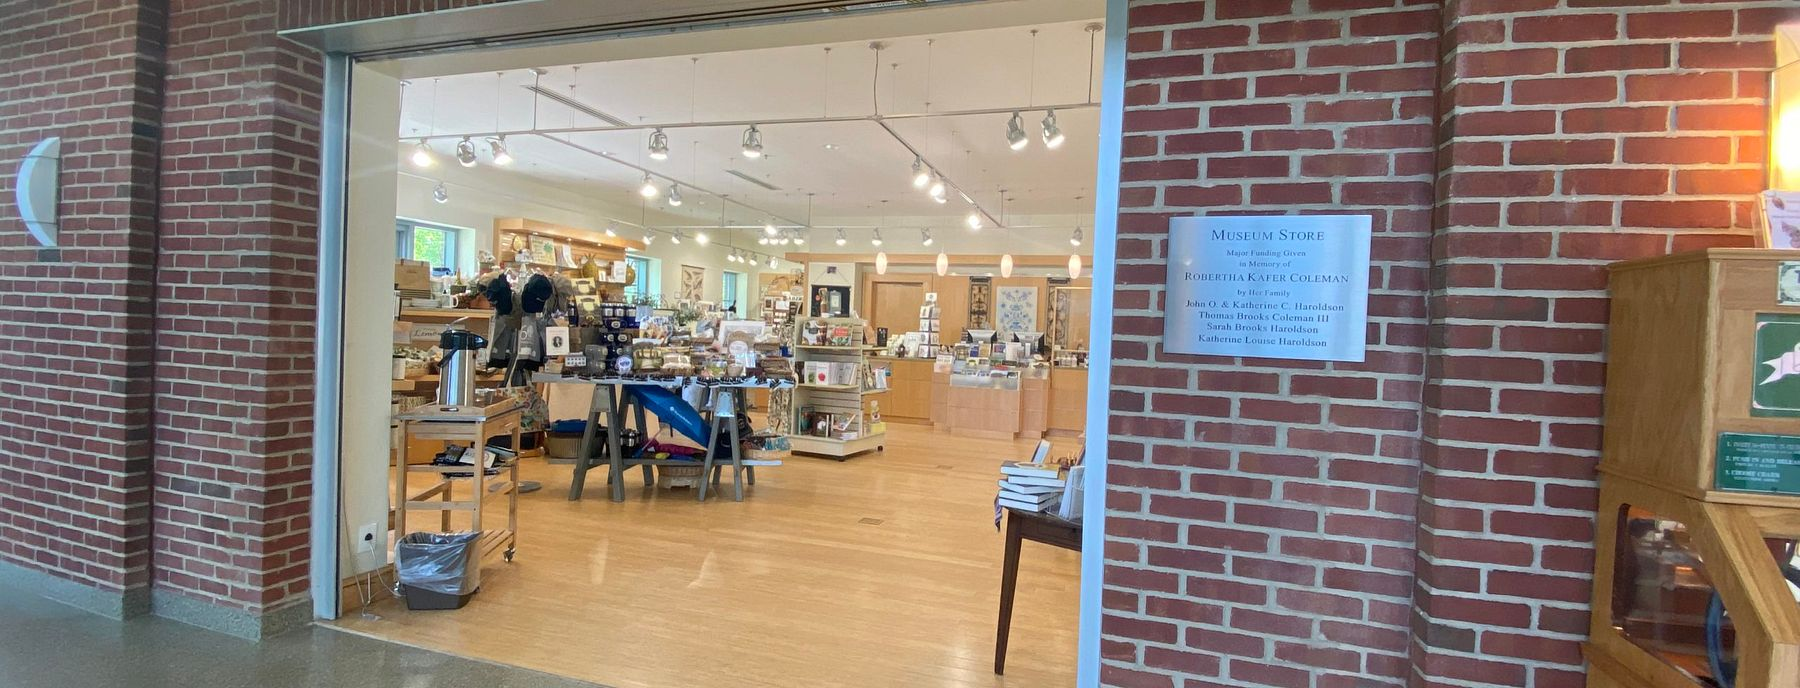 Tryon Palace Museum Store located in the North Carolina History Center